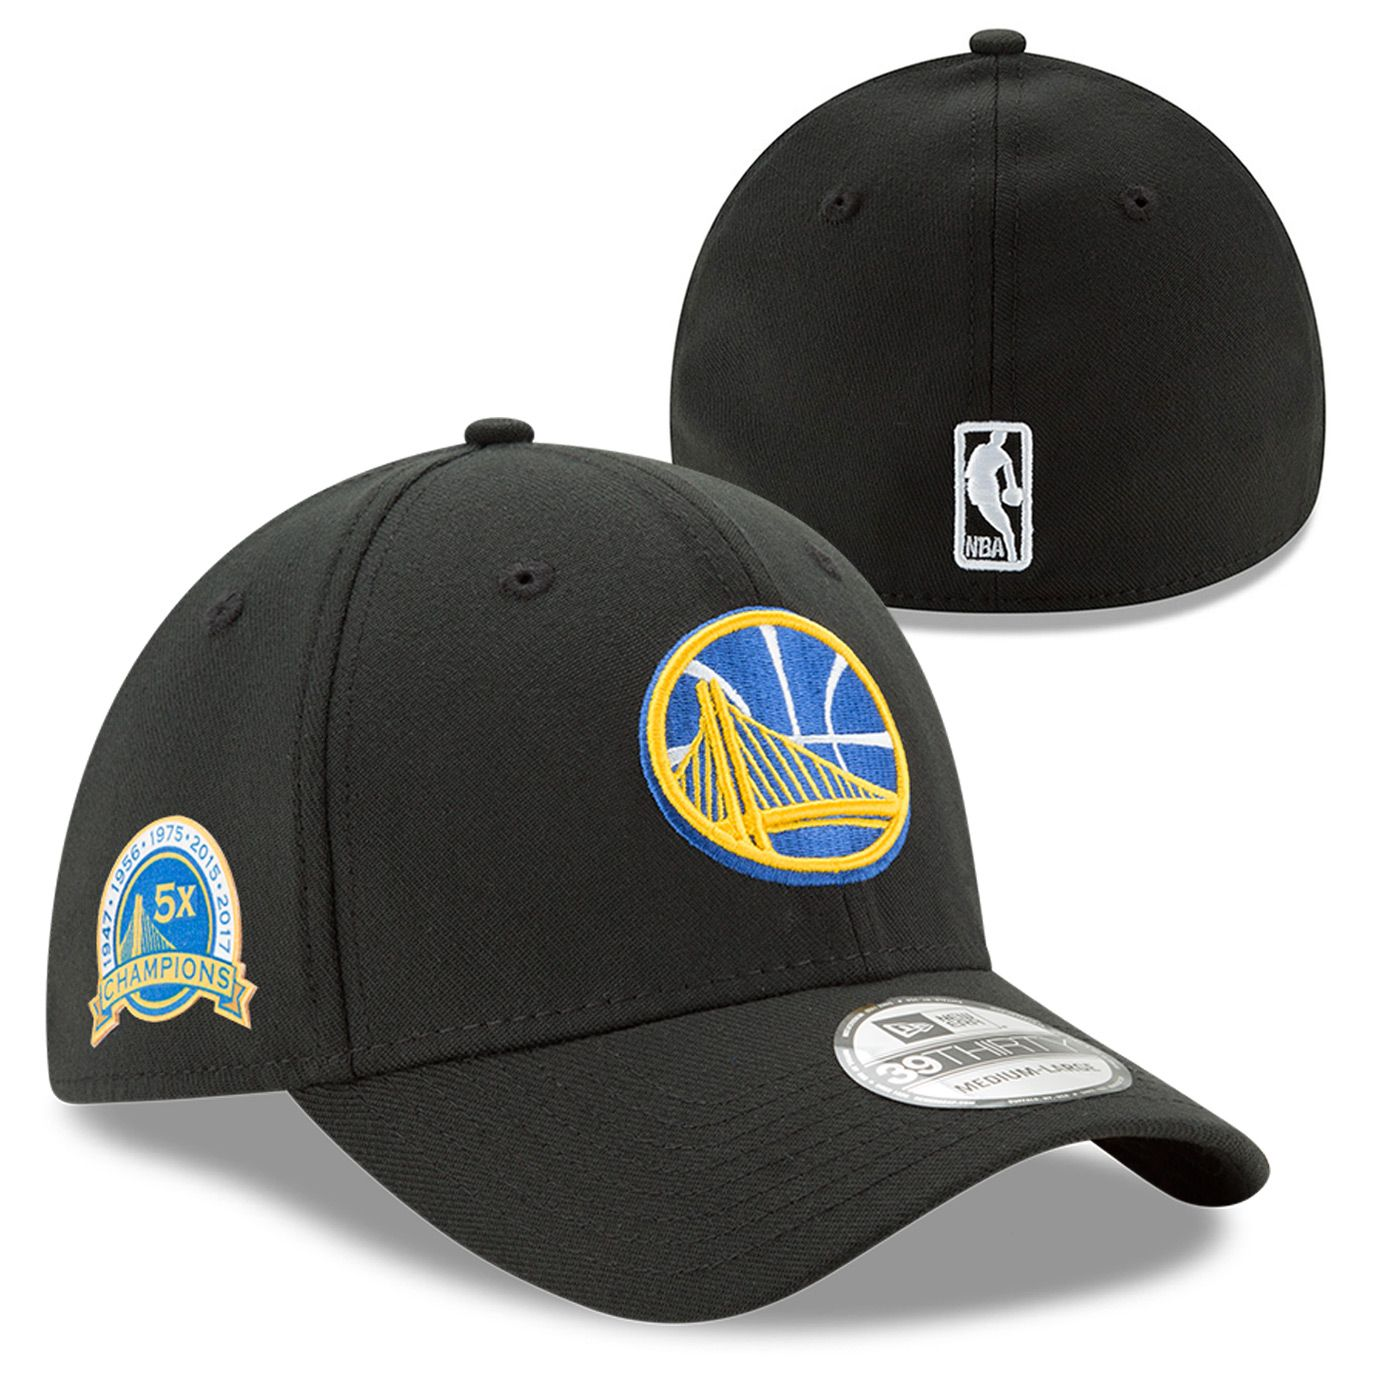 Golden State Warriors New Era 2017 NBA Finals Champions 5X Champs 39THIRTY  Flex Cap - Black 8c2f8599e8c9